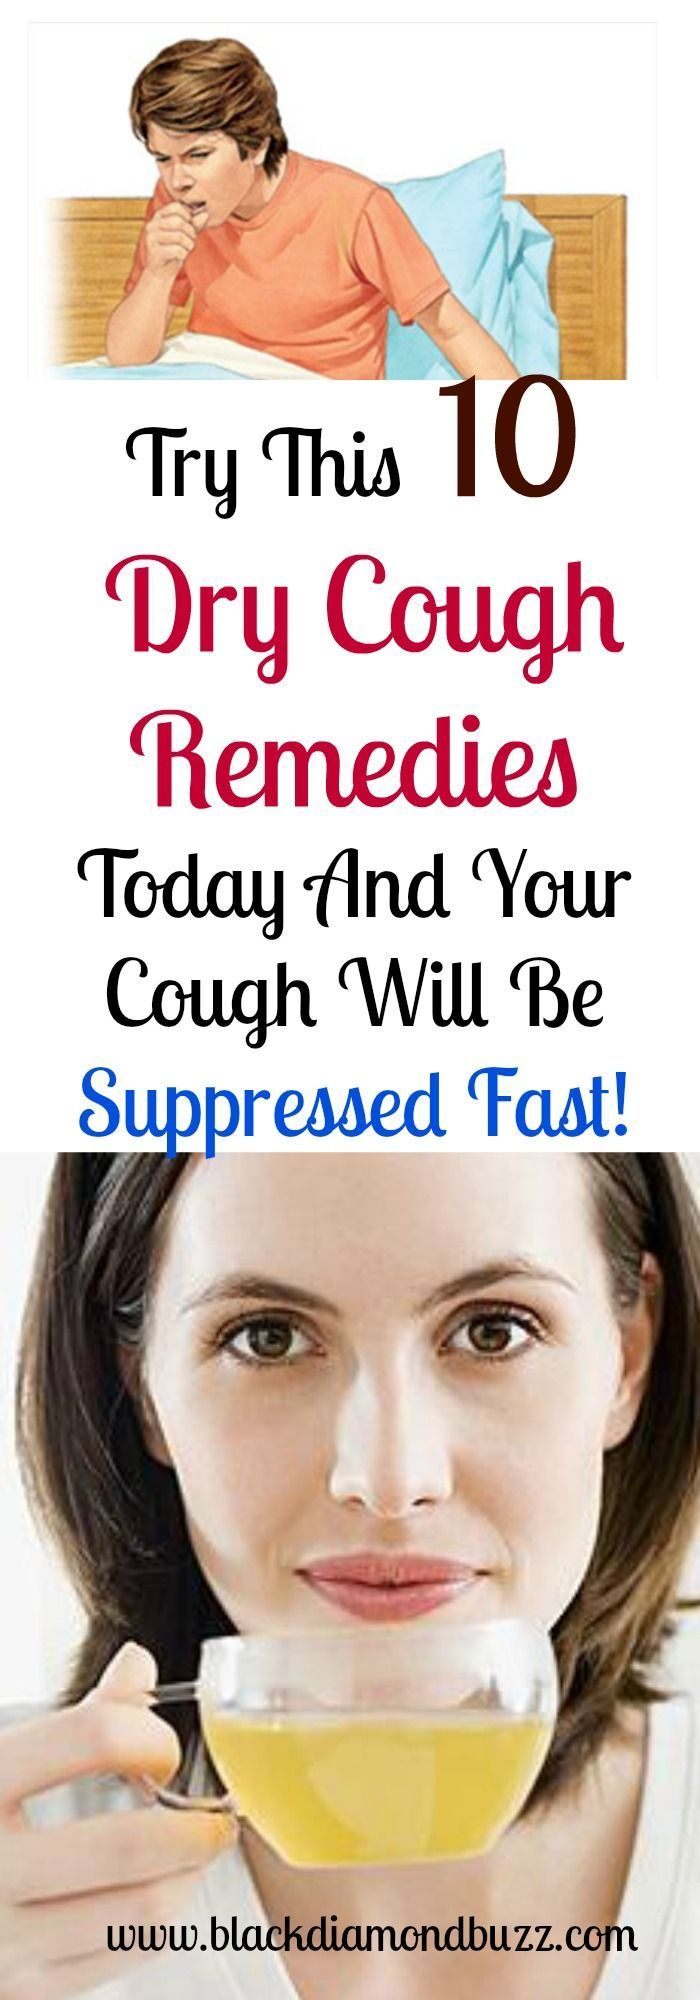 Try This 10 Dry Cough Remedies Today And Your Cough Will Be Suppressed Fast!  There are two types of coughs, the productive one that removes the phlegm from your body and the dry cough which is often caused by throat irritation.   https://www.blackdiamondbuzz.com/dry-cough-remedies-and-cough-suppressant/  #drycough #homeremedies #healthyliving